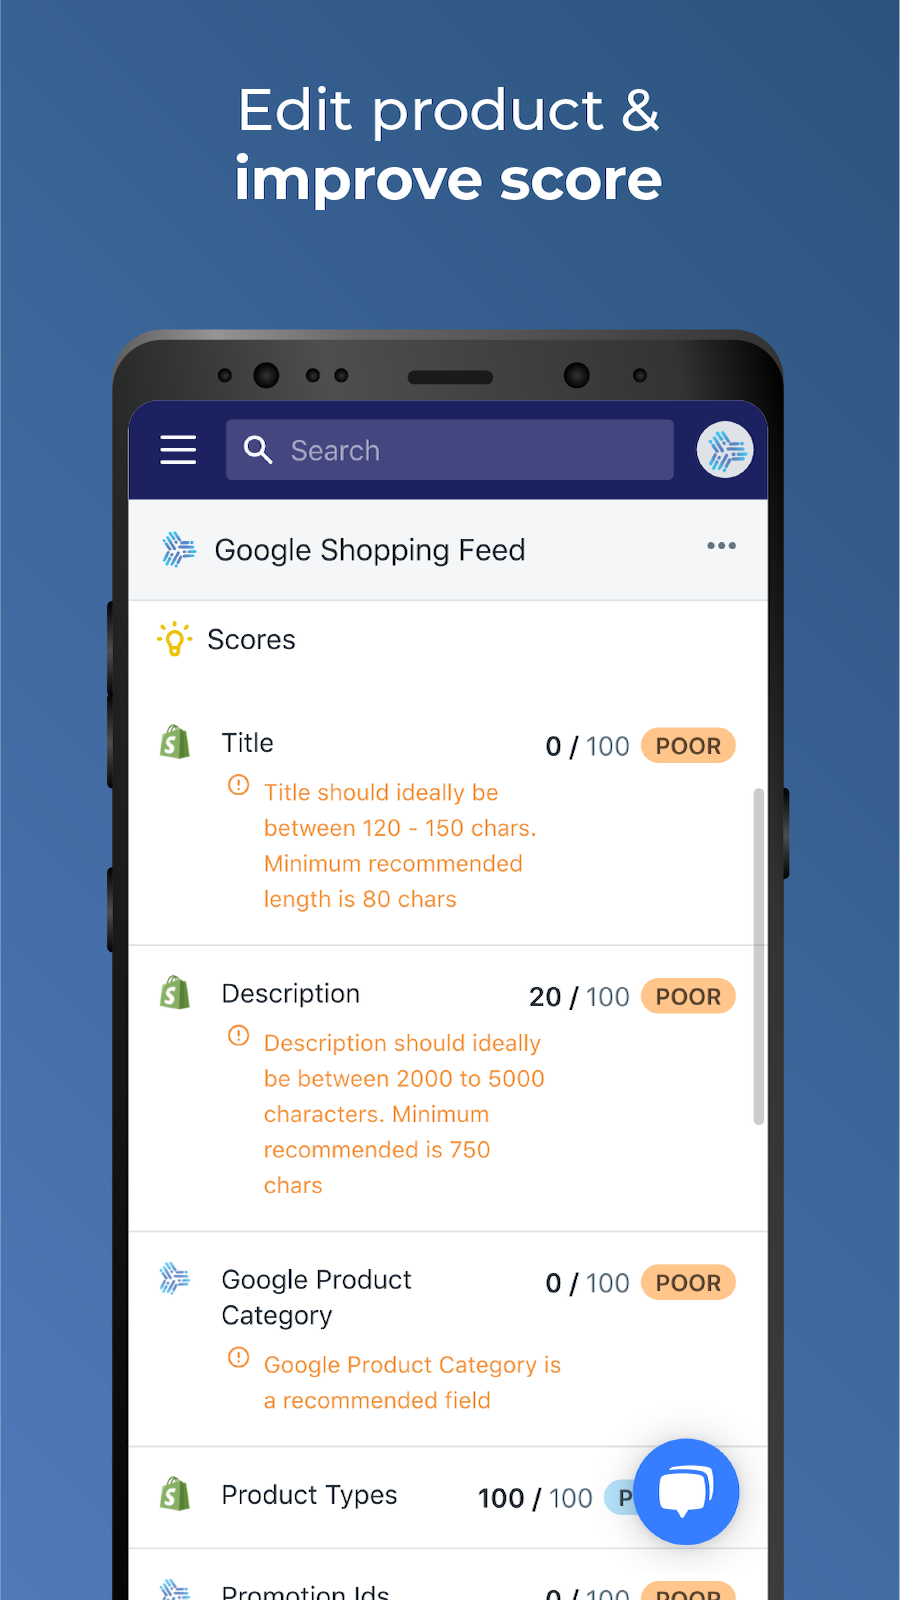 Improve product performance in Google Shopping Feed